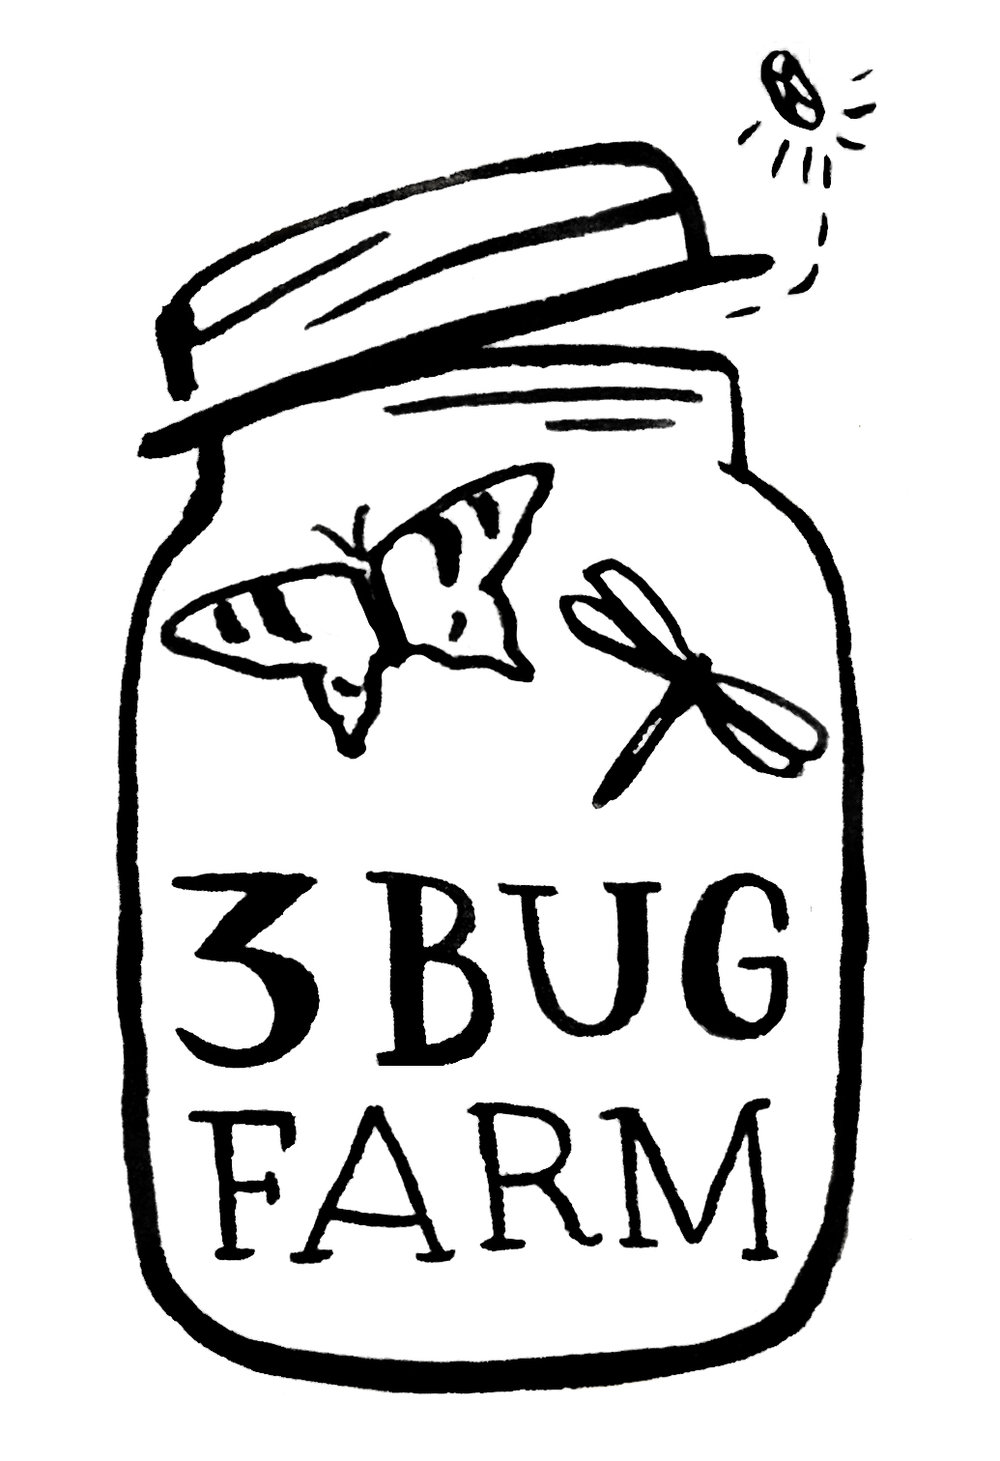 3 Bug Farm logo. Organic family farm in Mid-coast Maine.     Learn more…